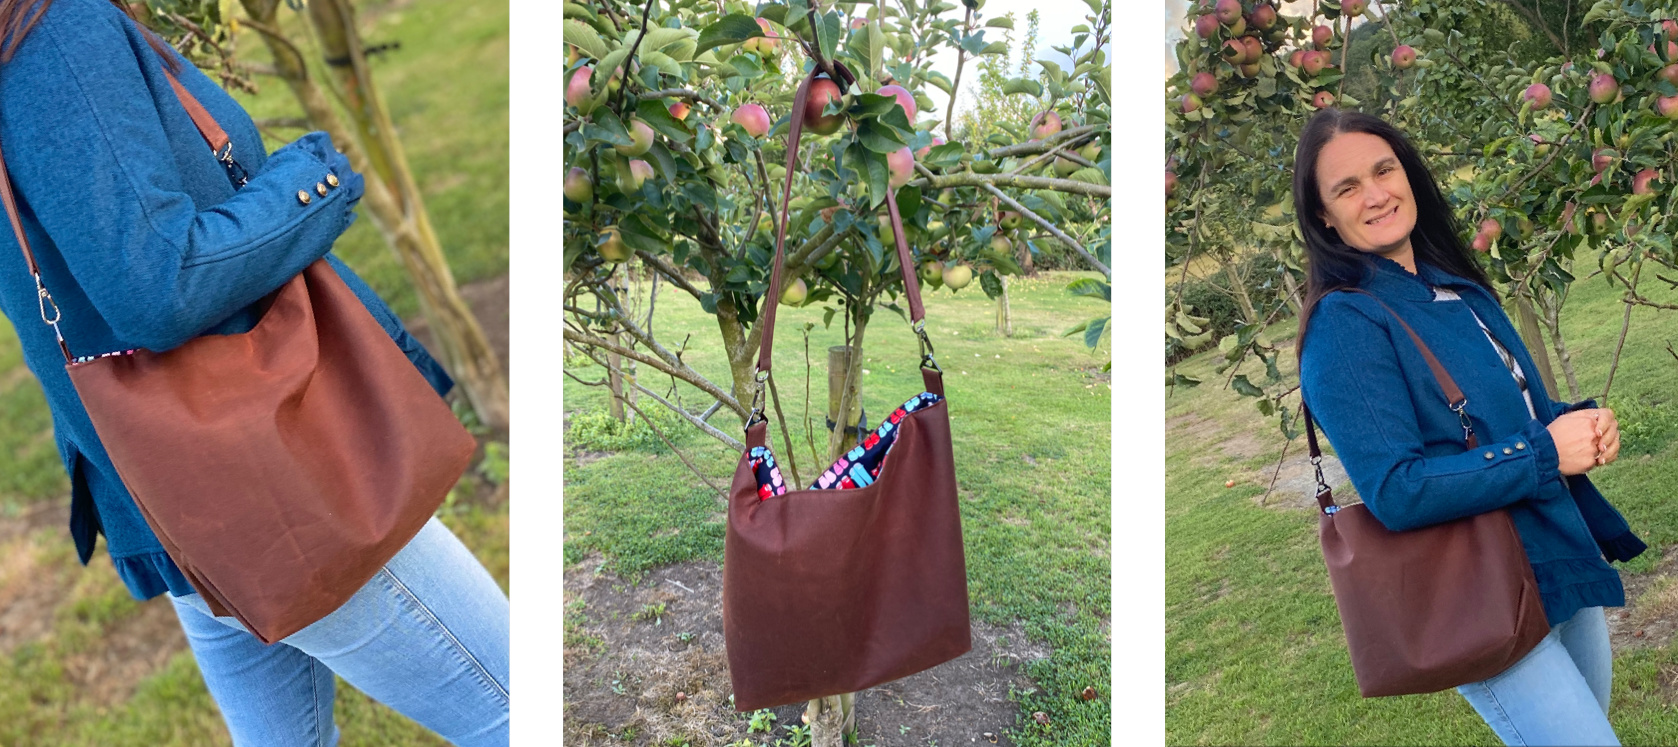 The Cwtsh Bag charity PDF pattern from Sewing Patterns by Mrs H, made by Amanda Sykes